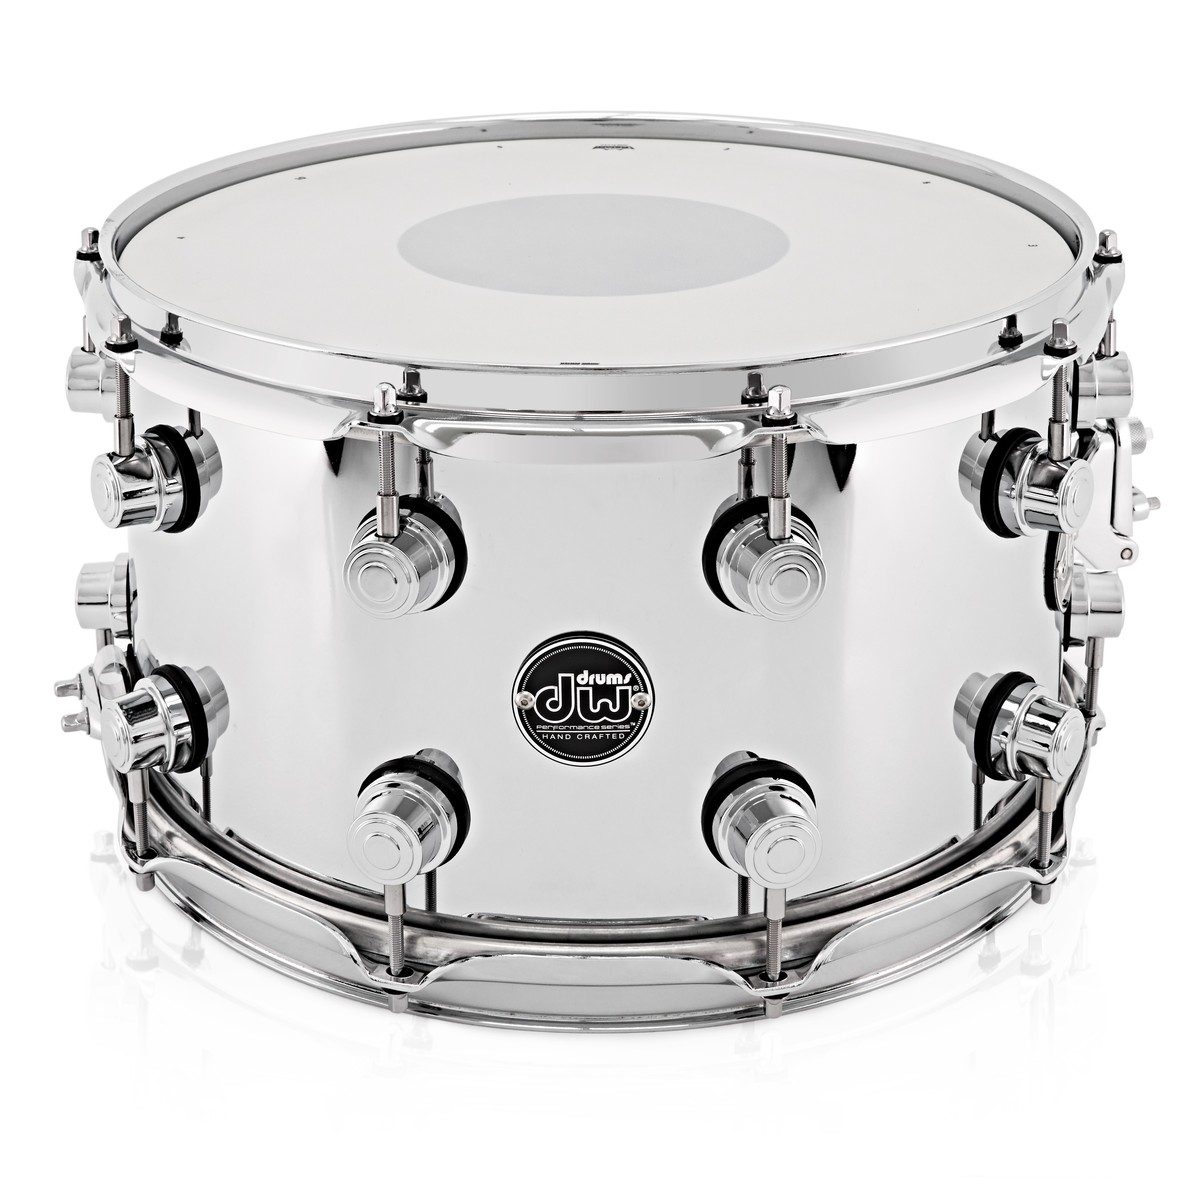 dw drums performance series 14 x 8 snare drum steel at gear4music. Black Bedroom Furniture Sets. Home Design Ideas